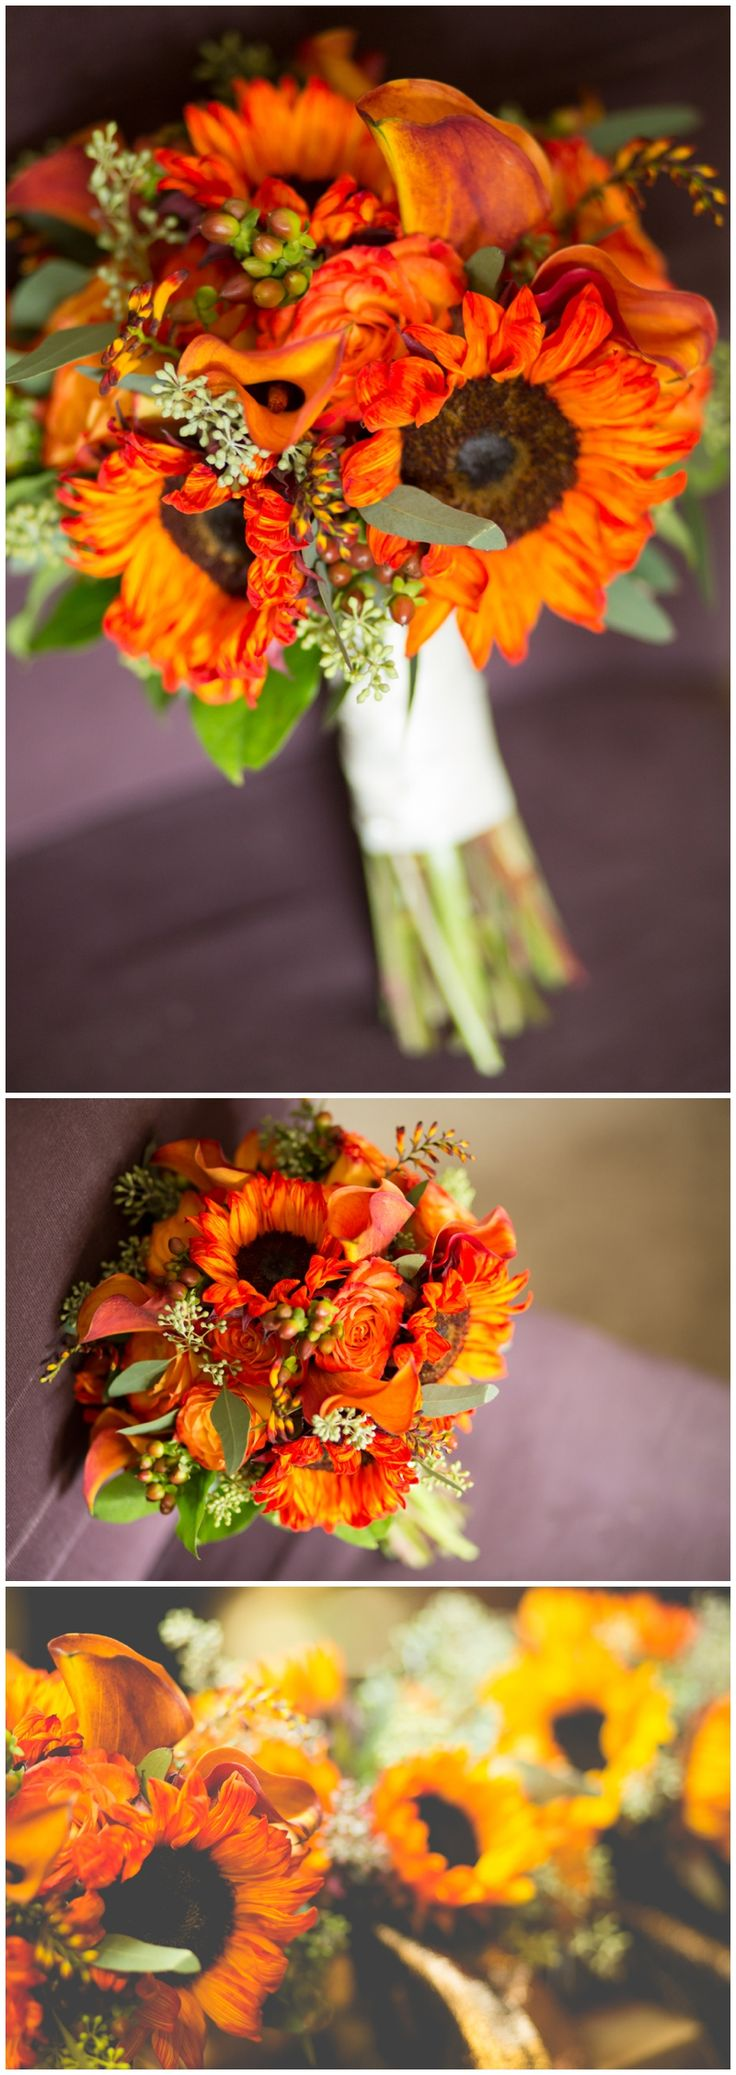 Fall, Sunflower Wedding Bouquet by Iza's Flowers, Inc.  www.weddibgsbyiza.com Photo by Brandi Image Photography